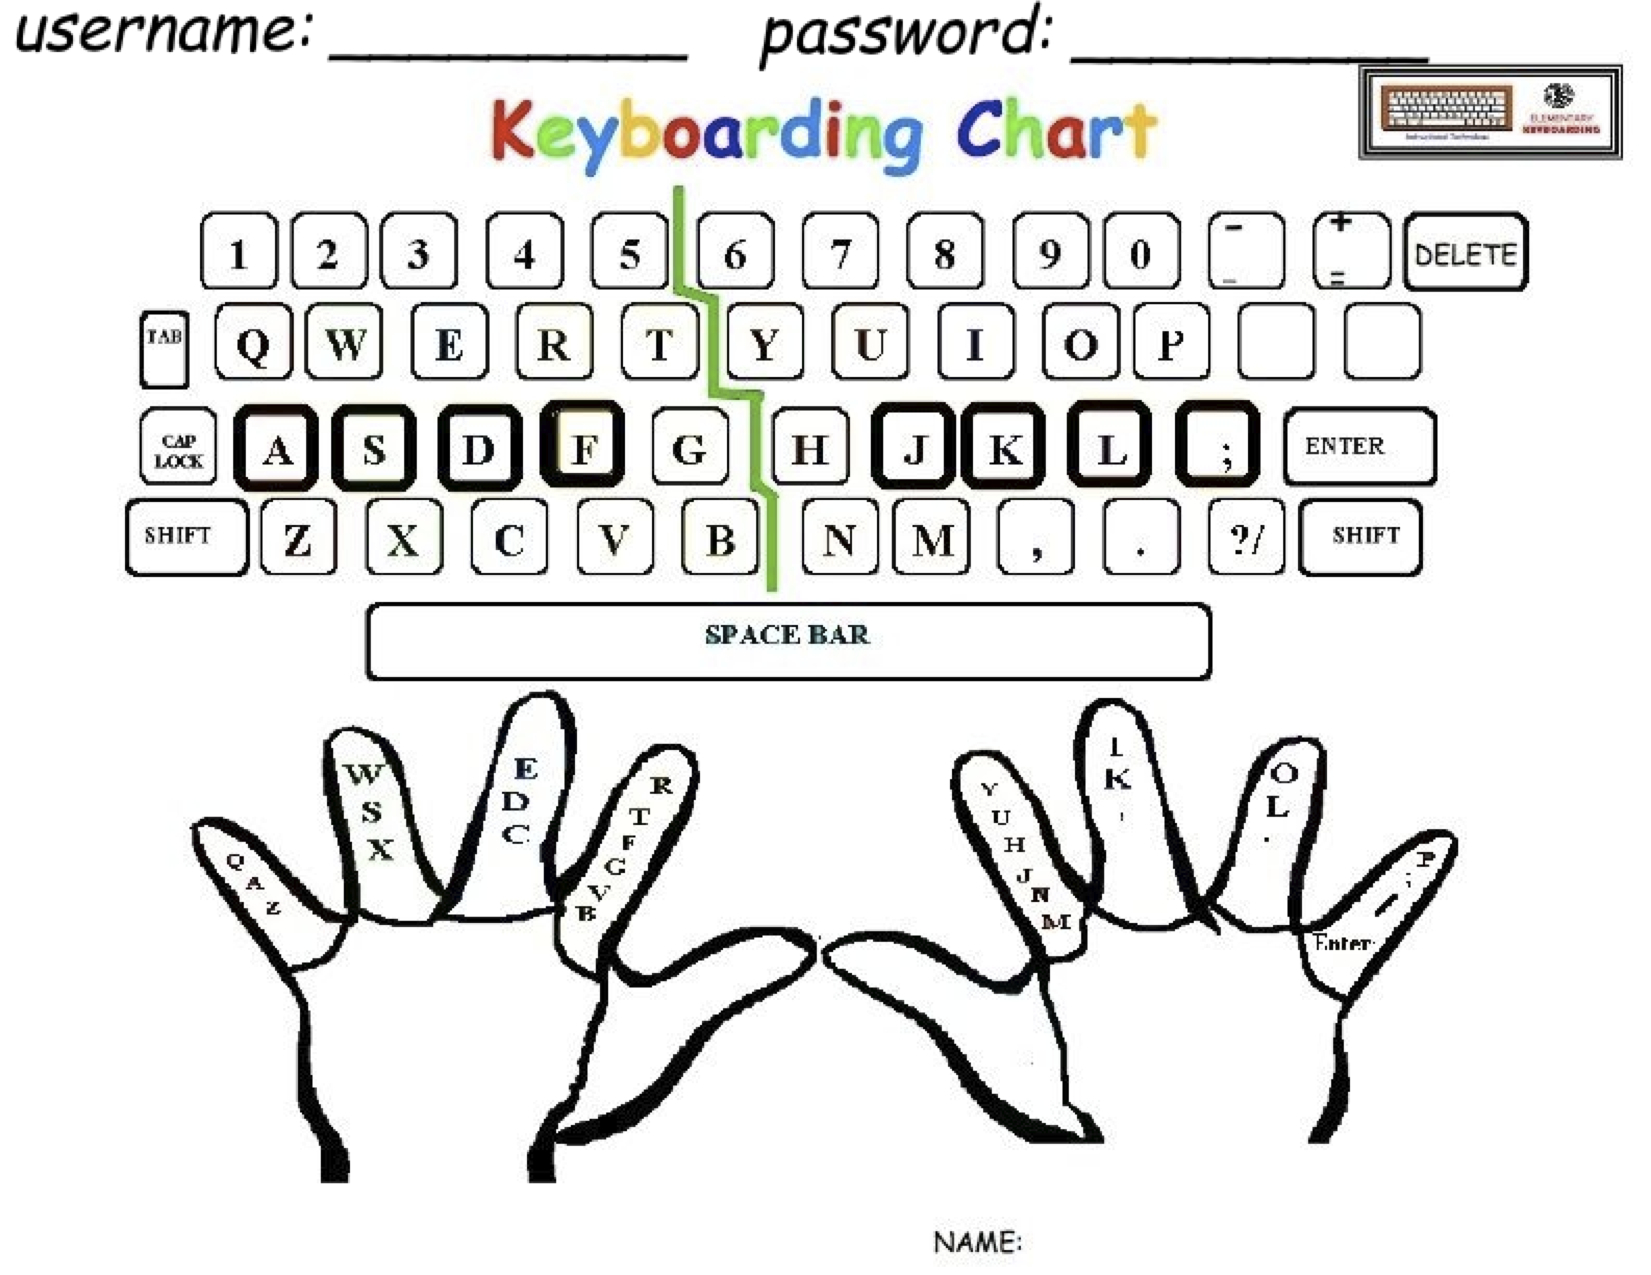 Truncale Chris Keyboarding Practice